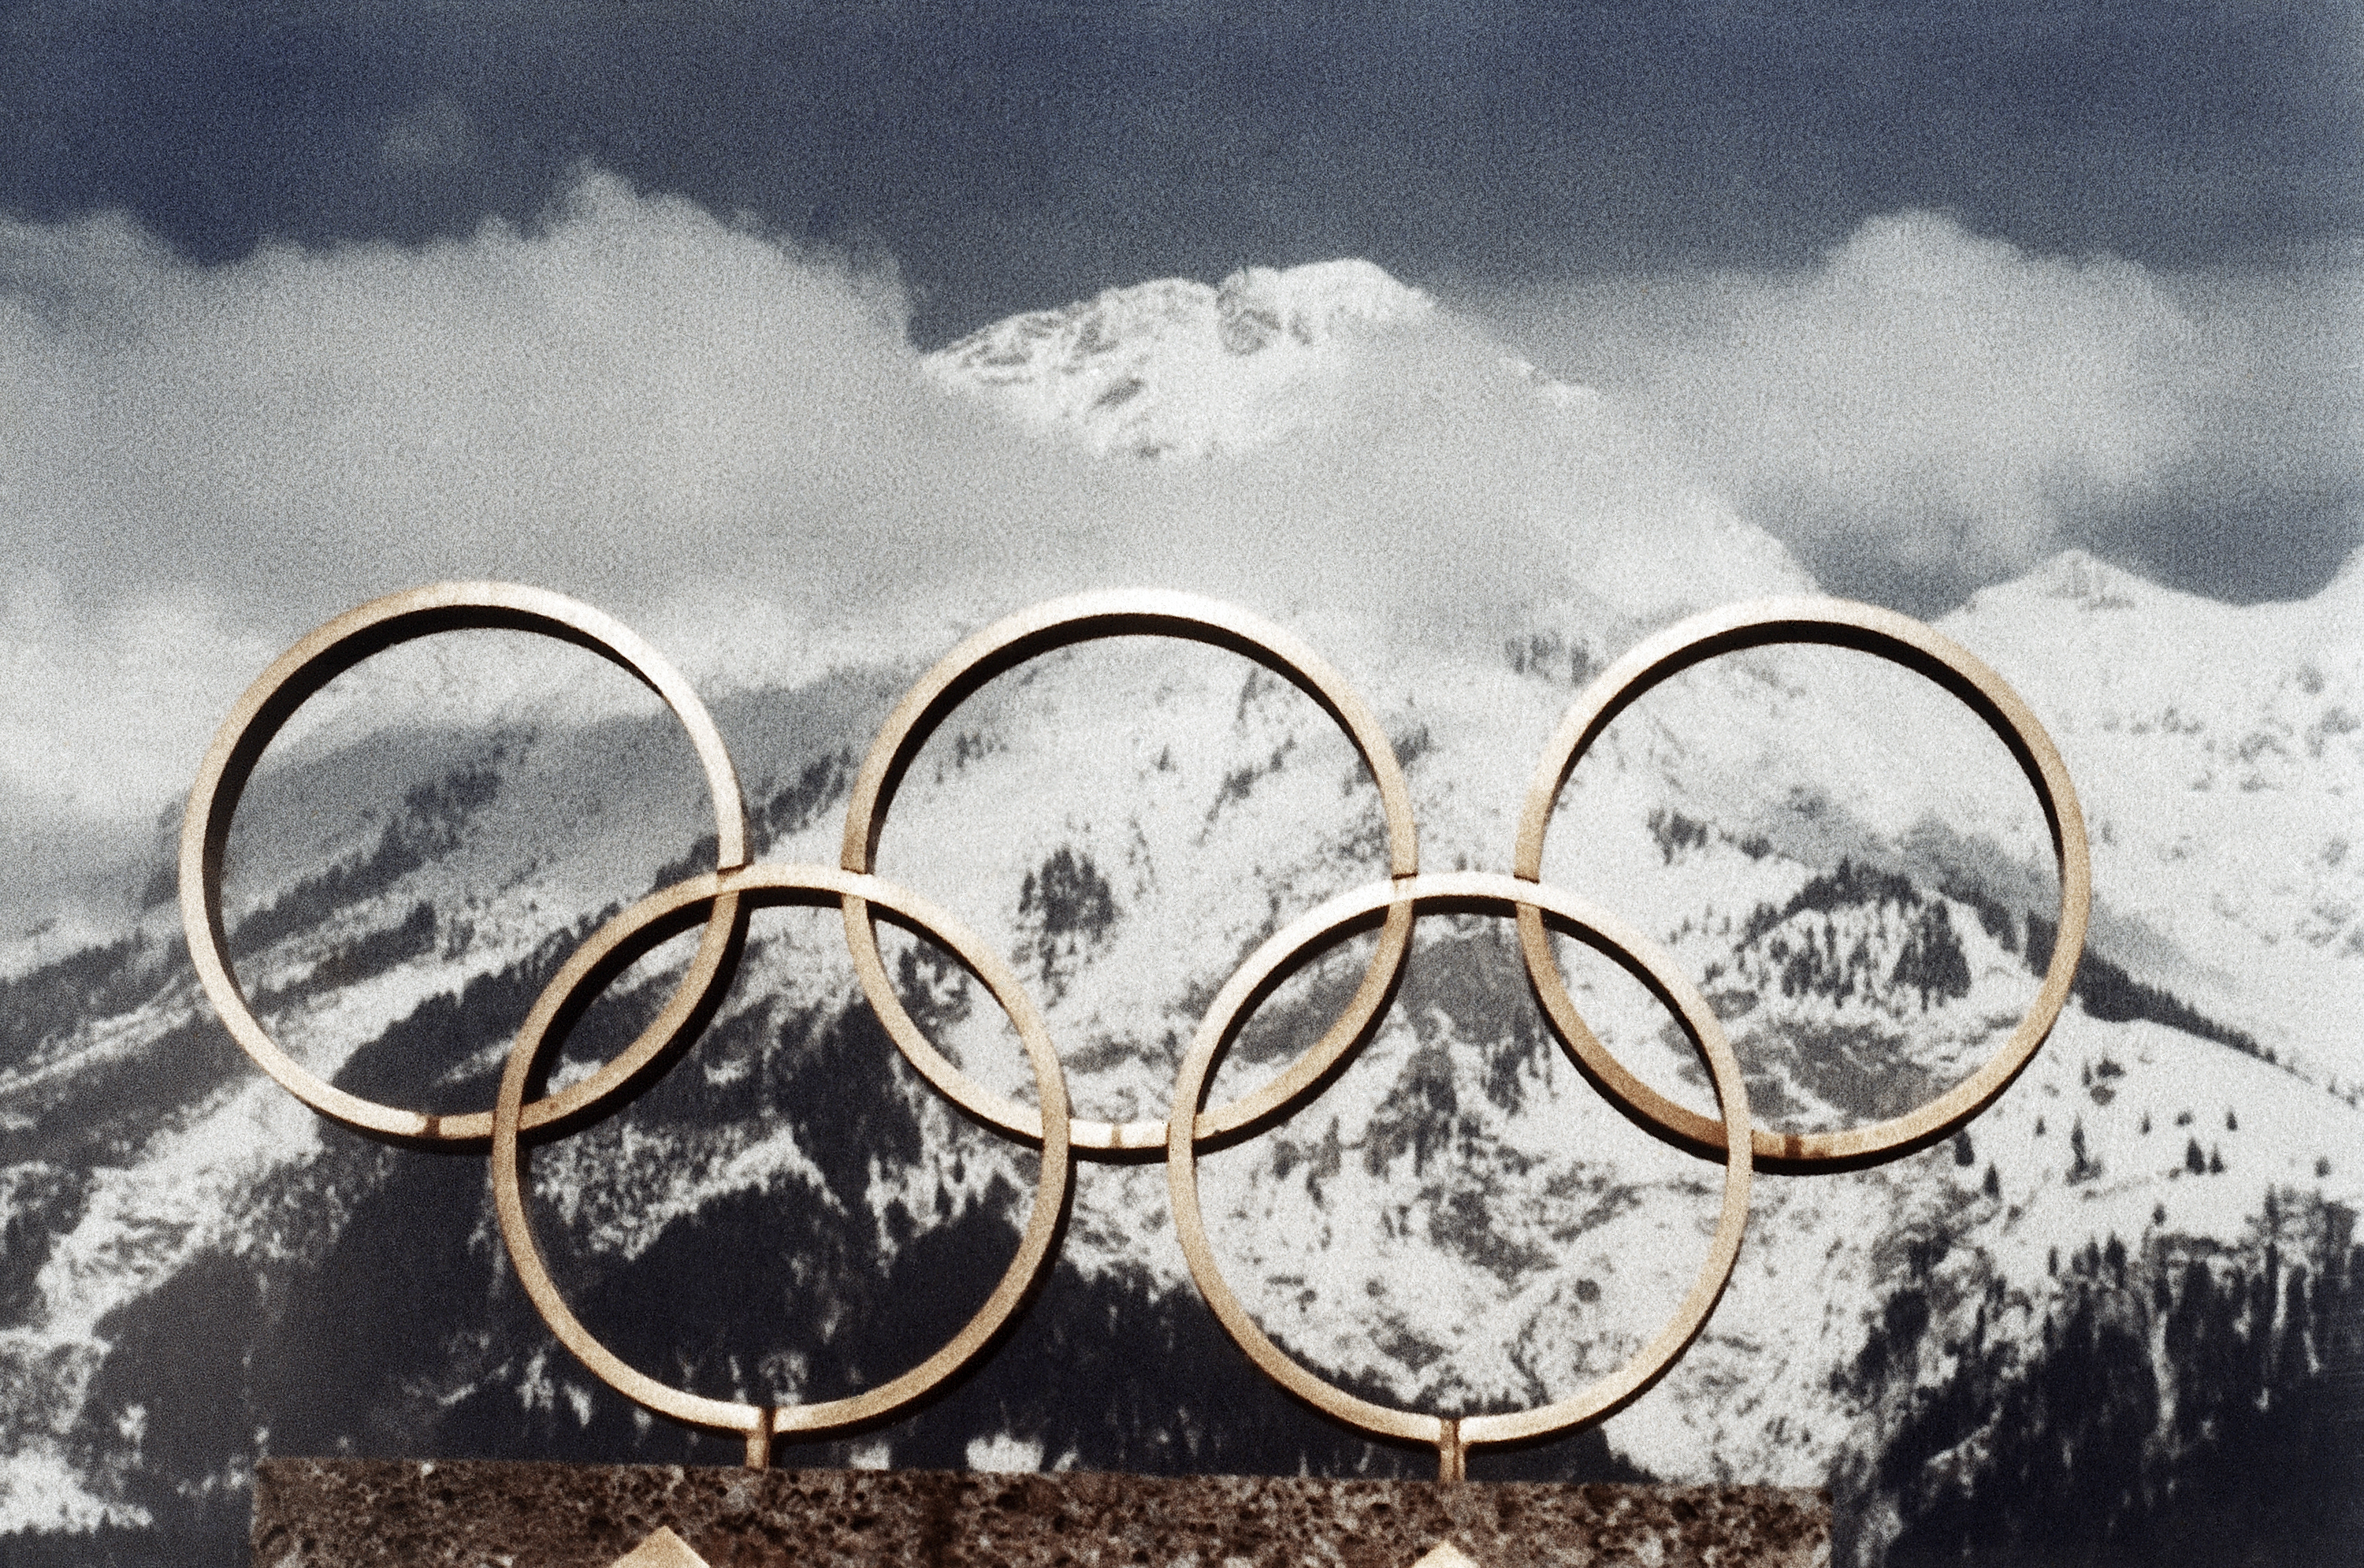 Photo: Innsbruck, Aistria, Ilympic Rings And Mountains 1976 (AP)